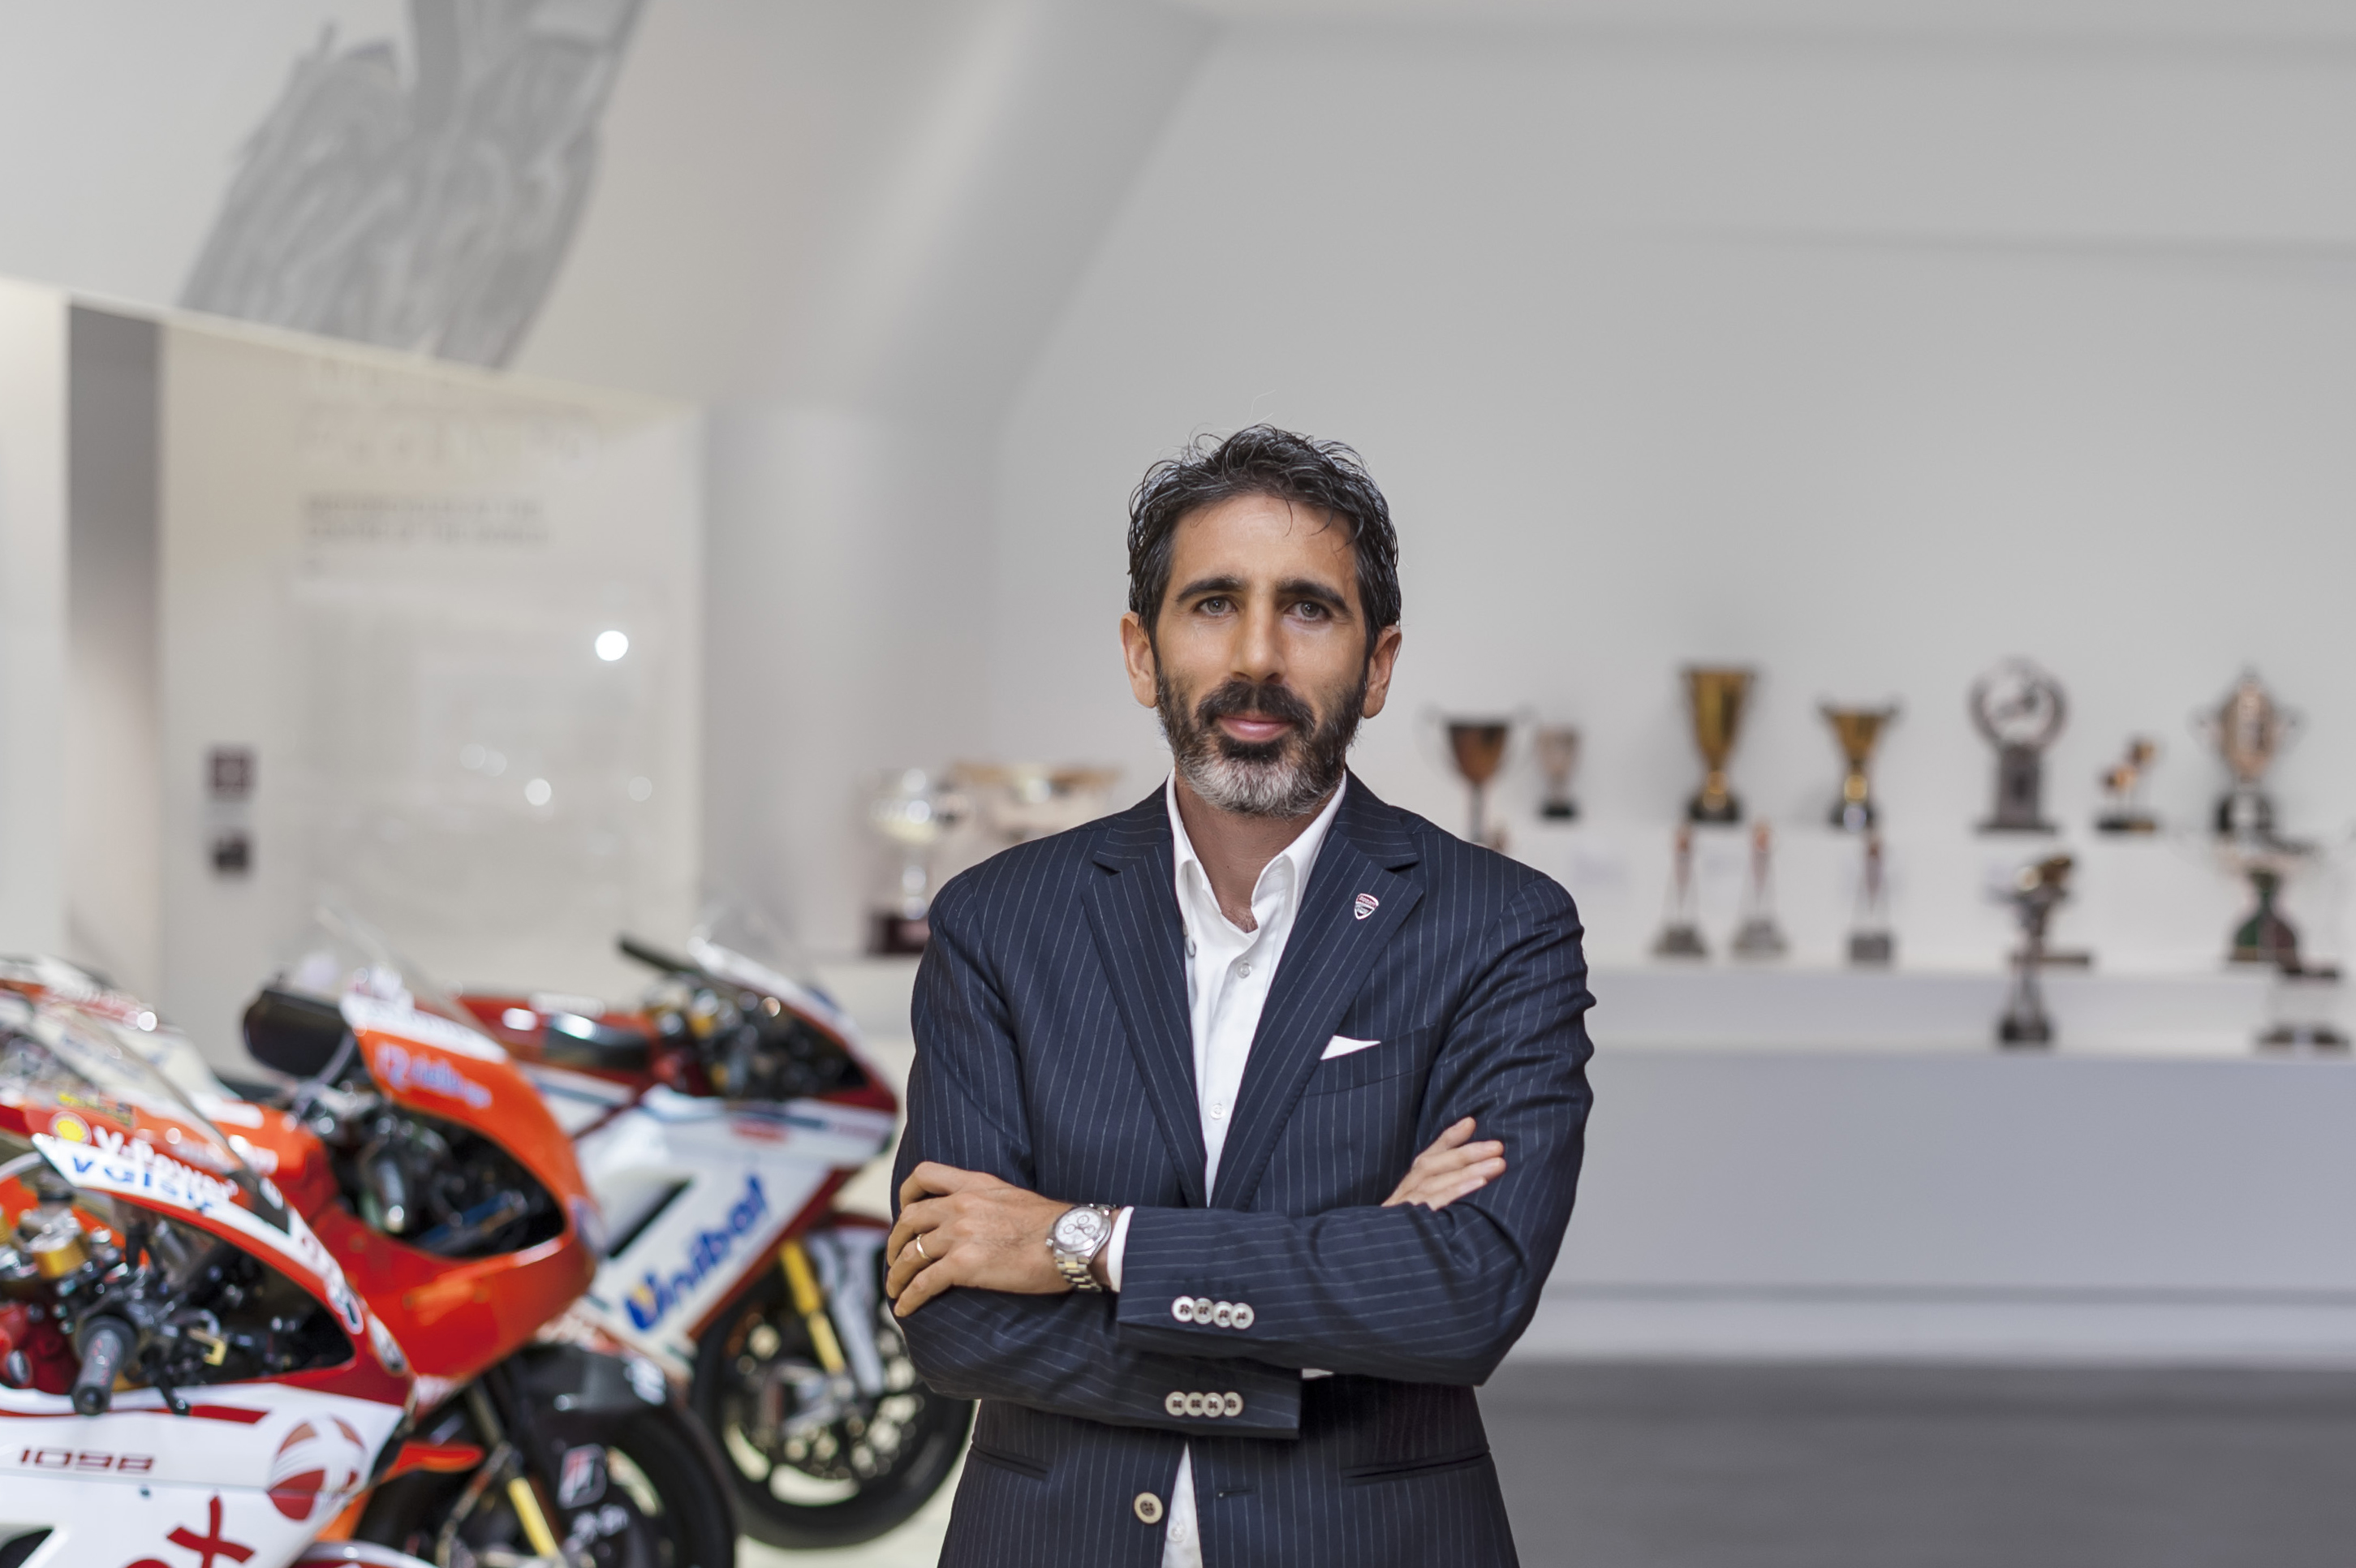 Francesco Milicia, Director Global Sales and After Sales Ducati Motor Holding